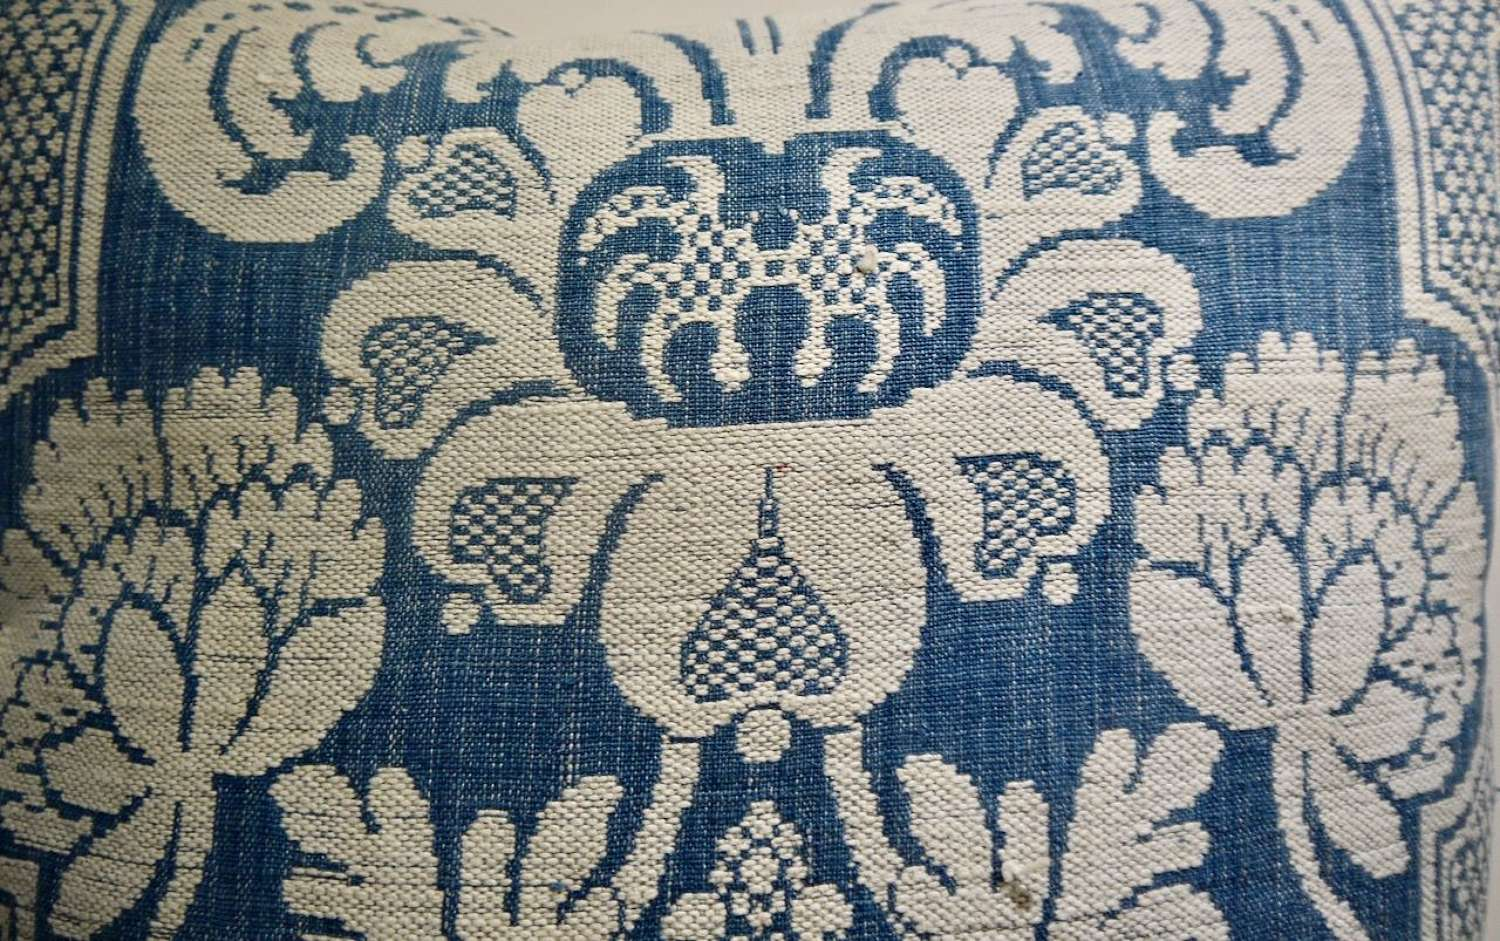 Toile D'Abbeville Cushion French 18th Century